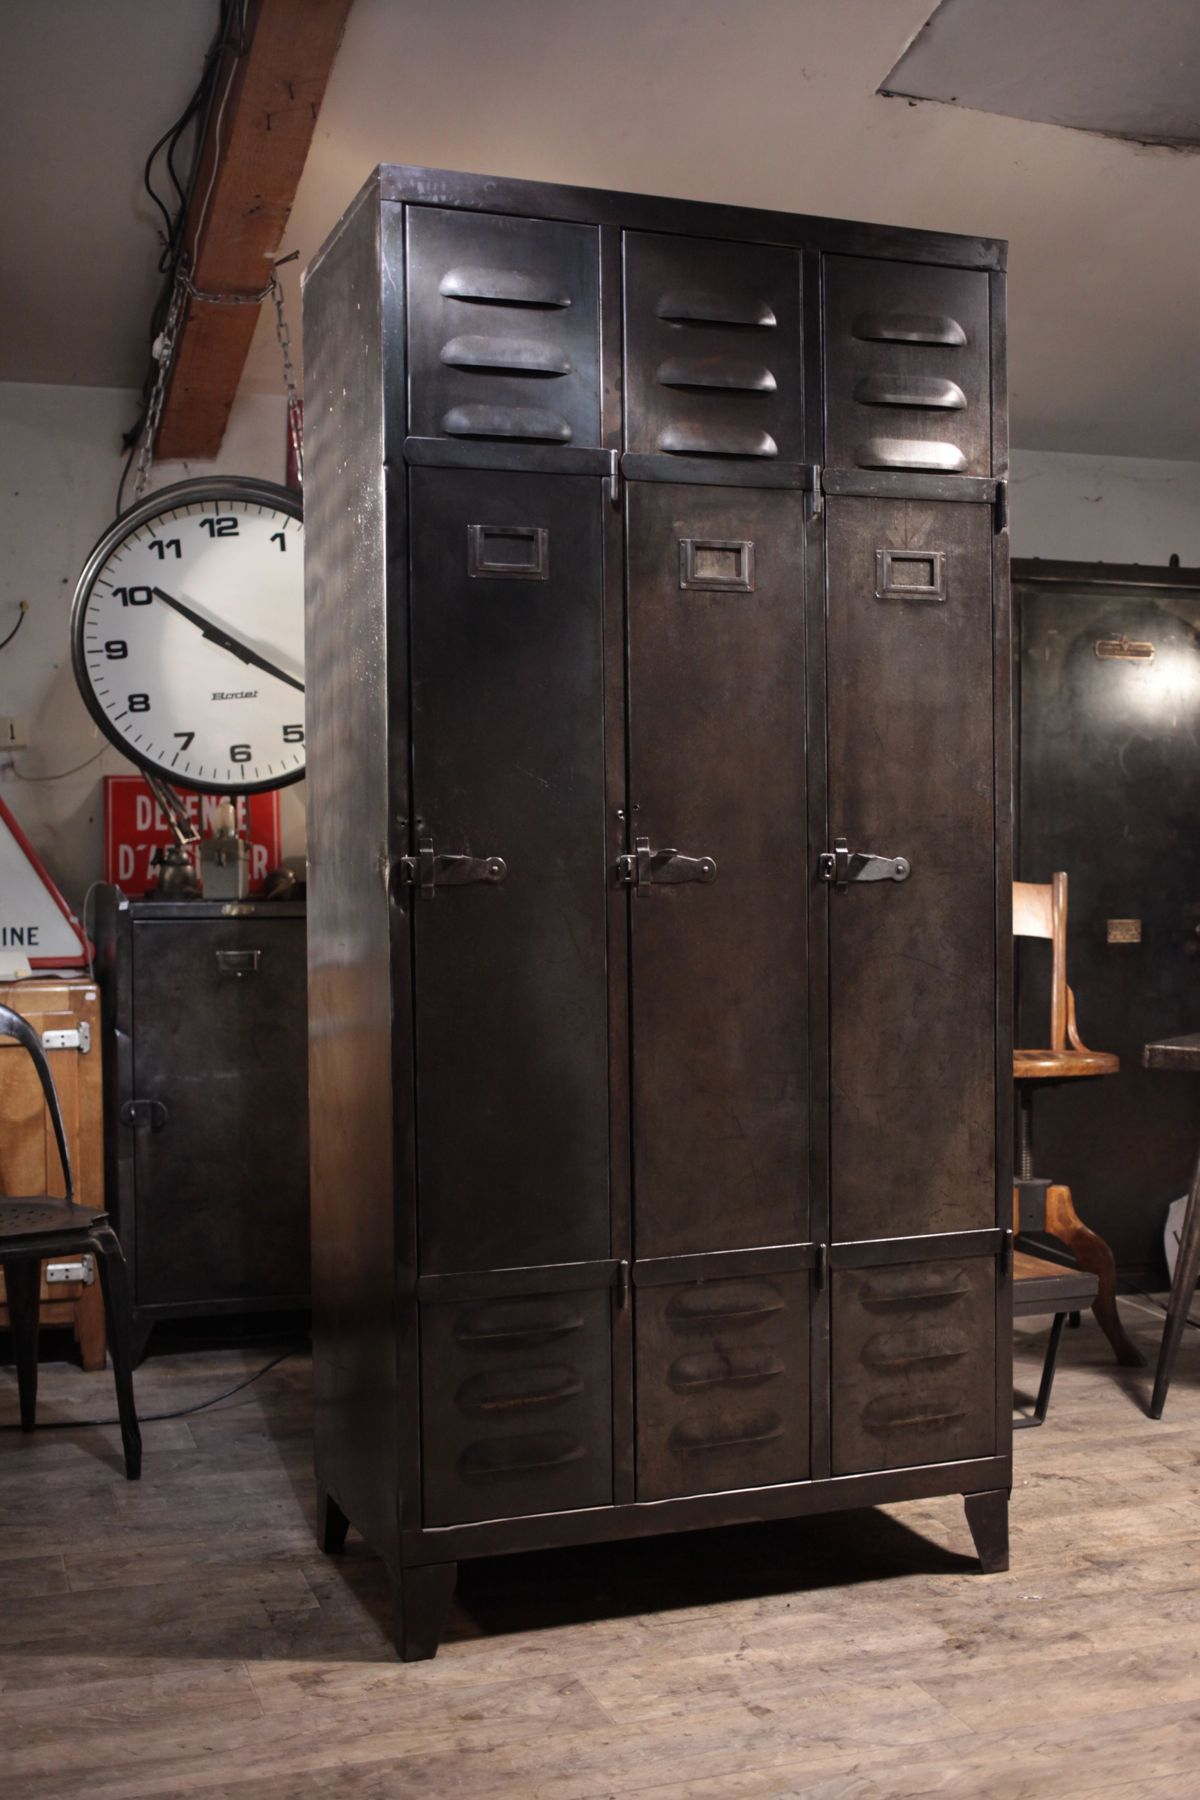 meuble de metier industriel ancien vestiaire en metal 1940 deco loft meuble industriel vintage. Black Bedroom Furniture Sets. Home Design Ideas